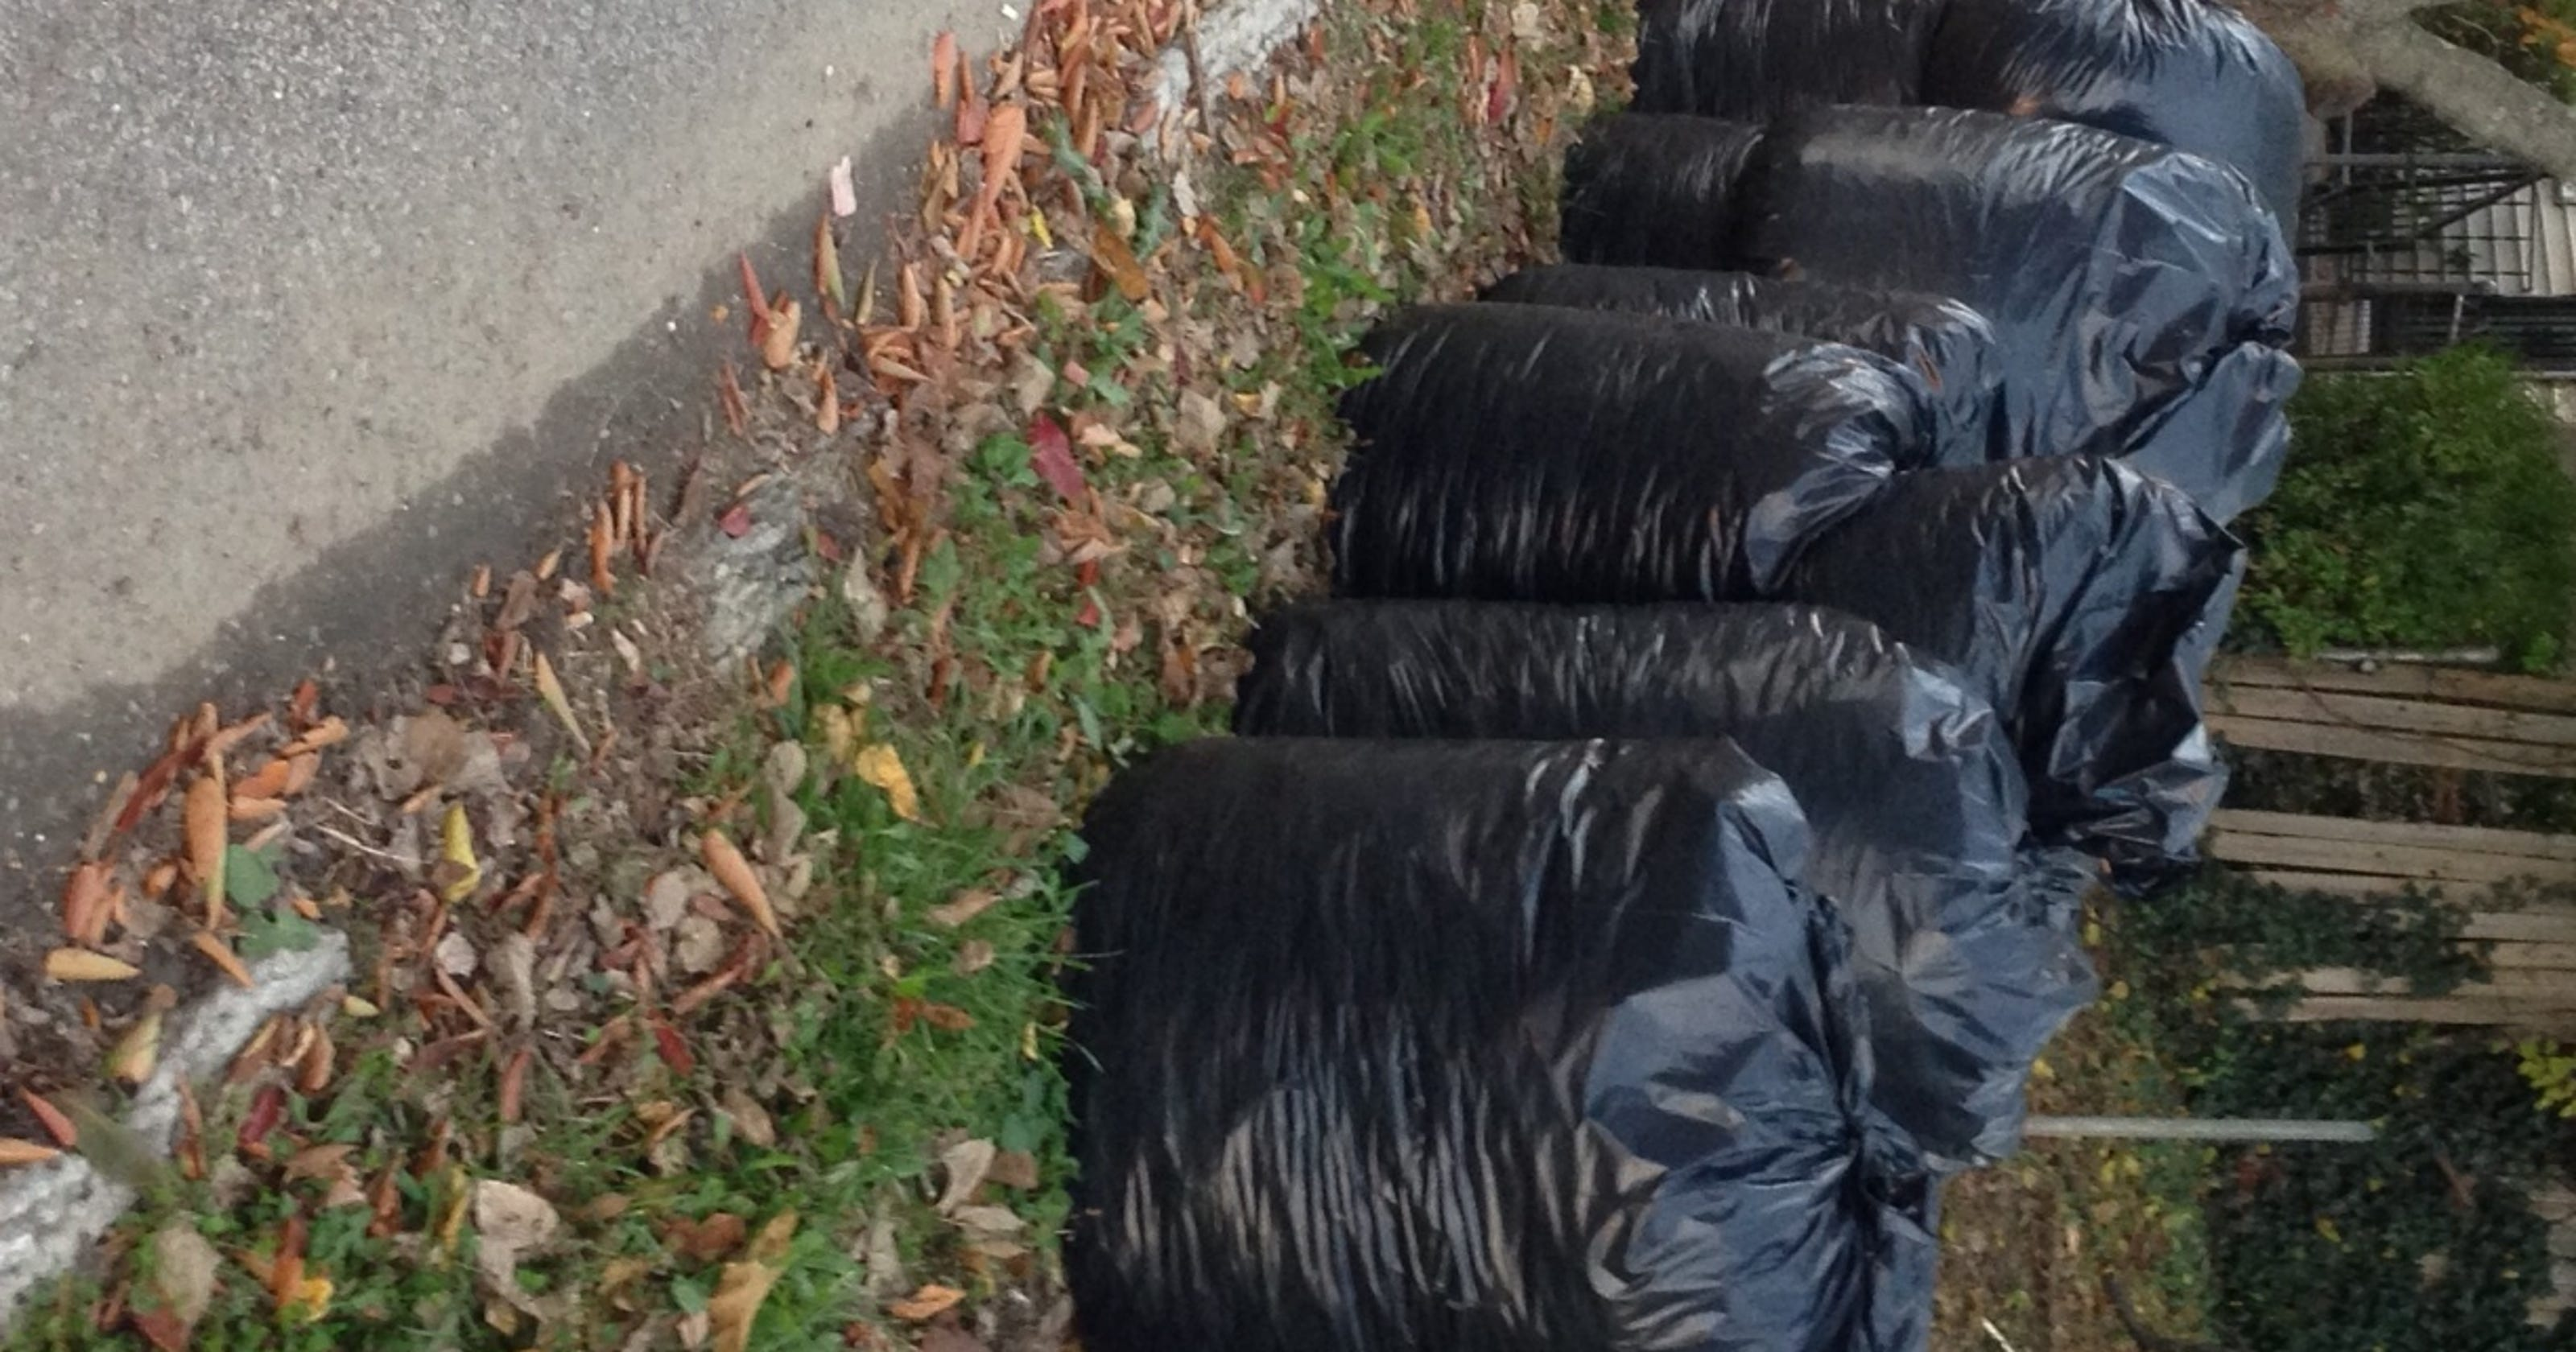 Louisville plastic bag ban is up for discussion again